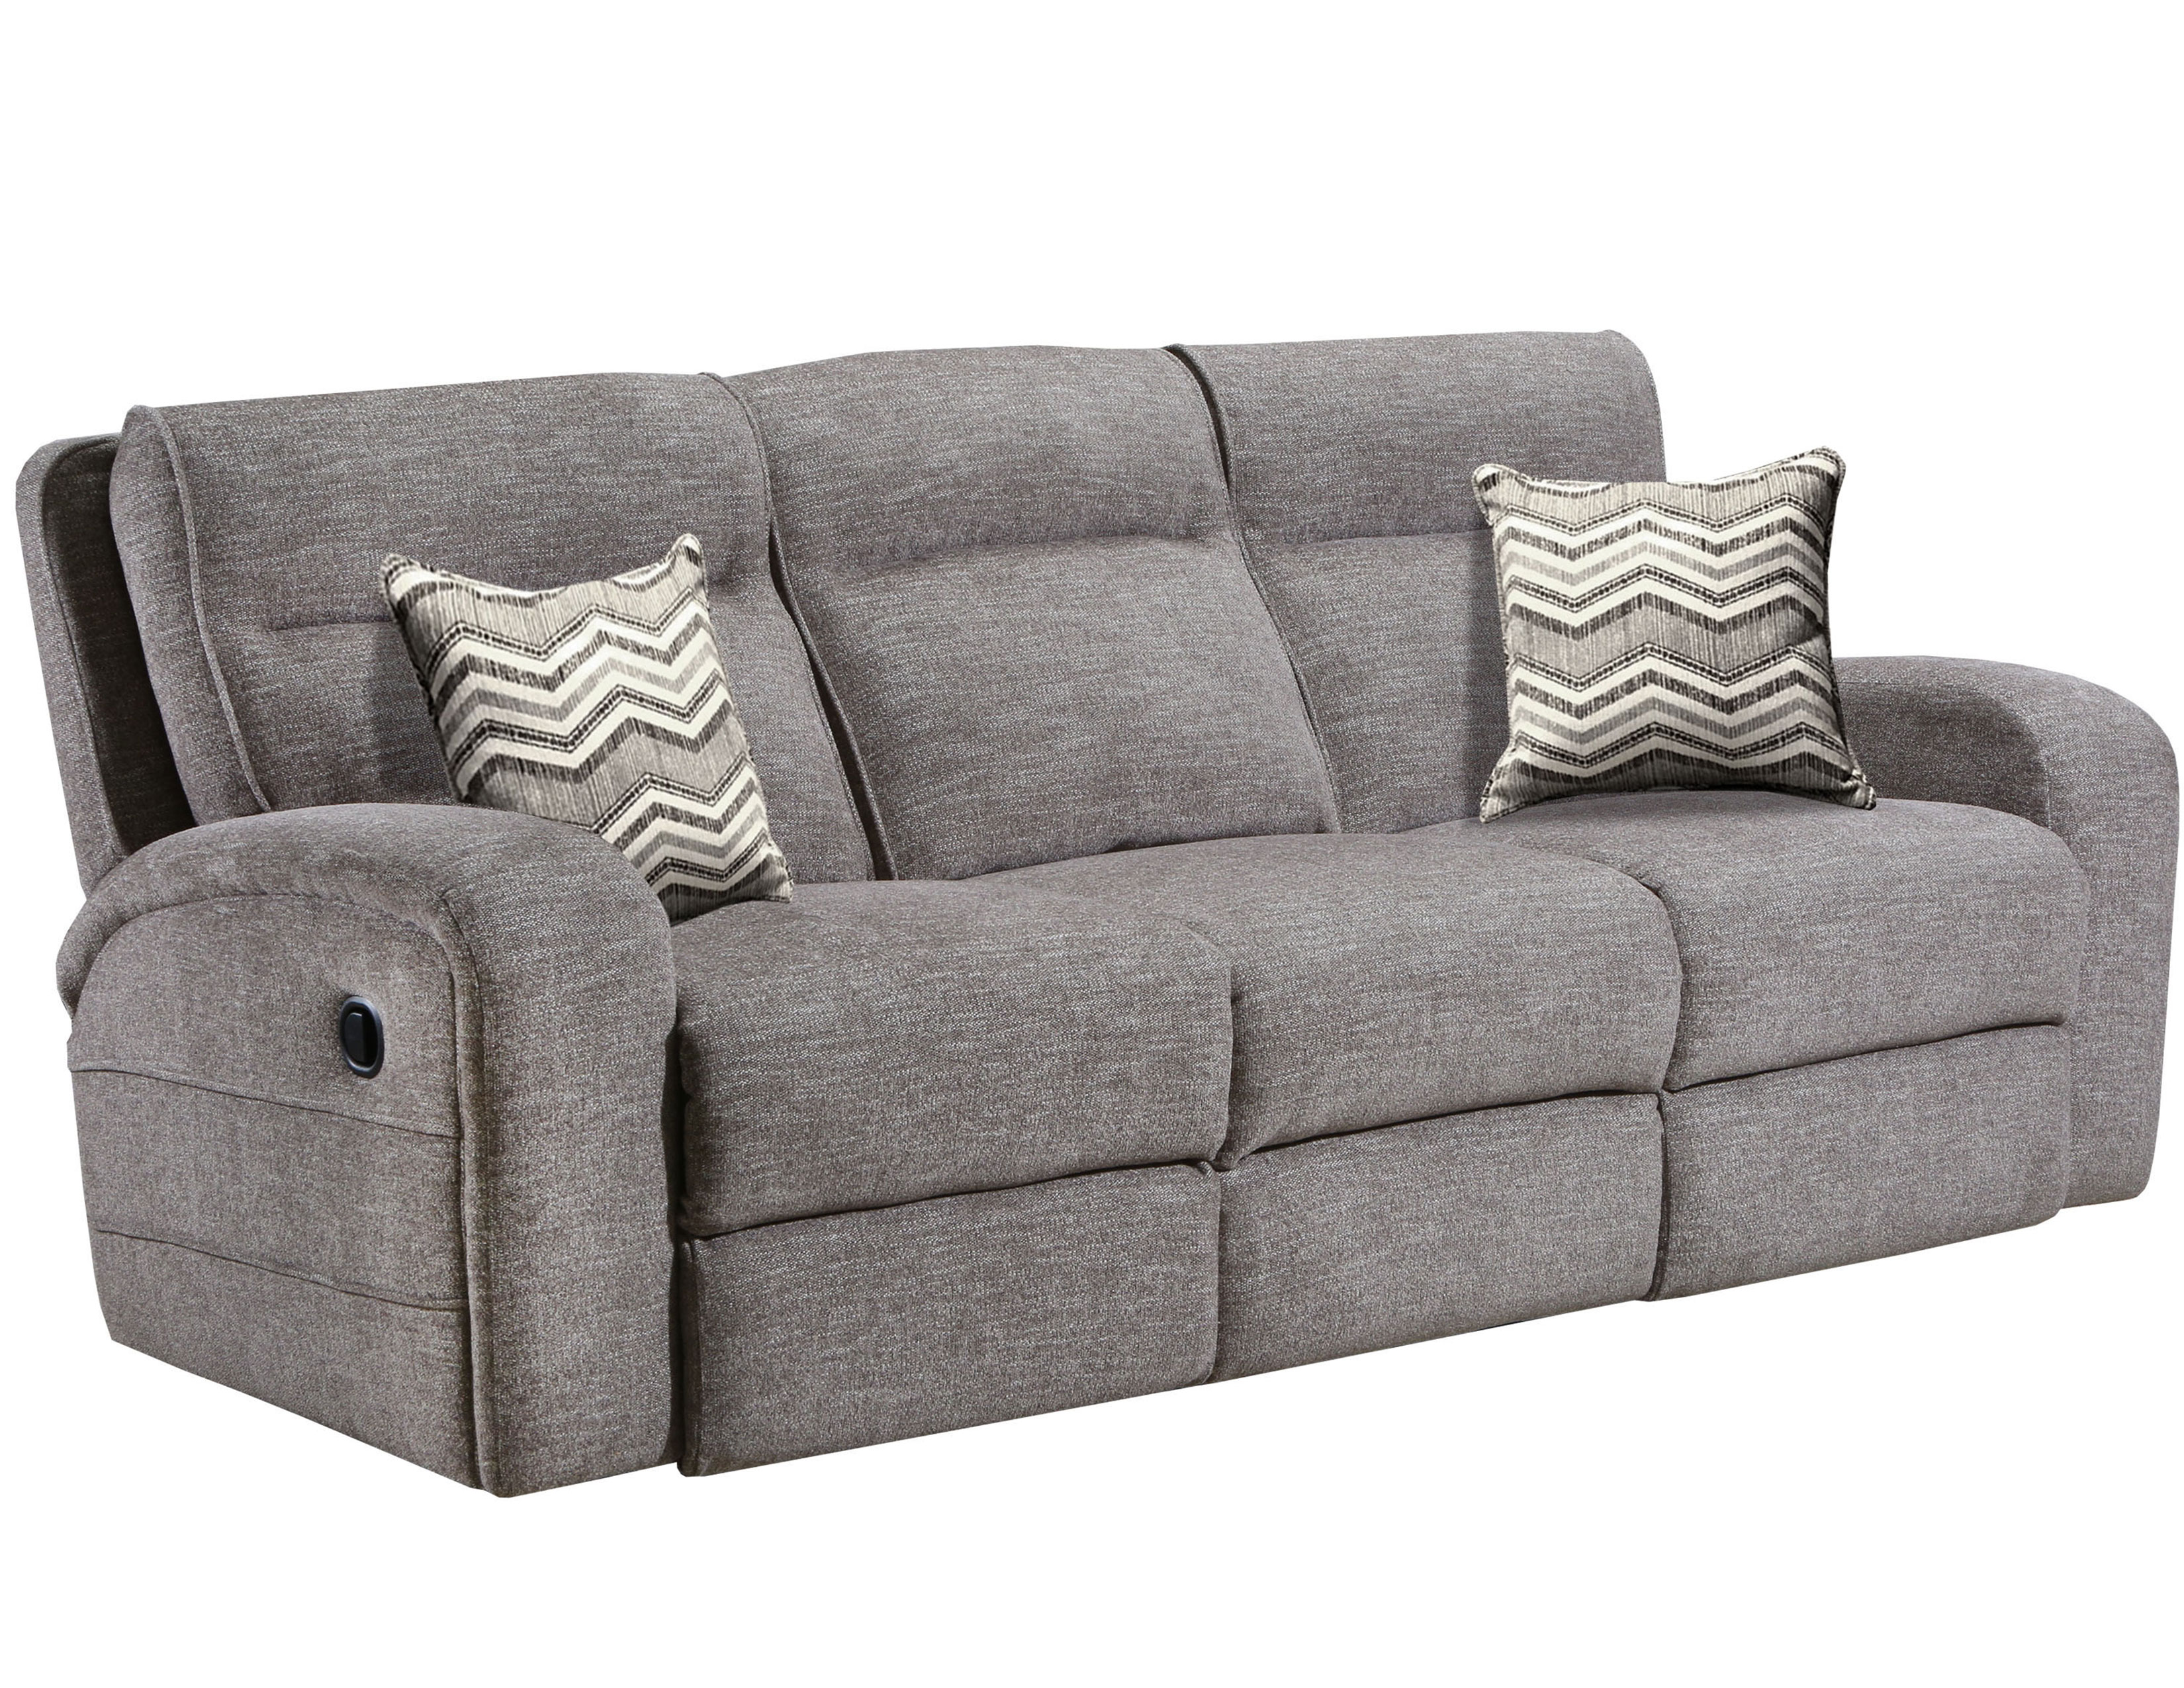 Leeds Double Reclining Sofa In Stone Sofas And Sectionals